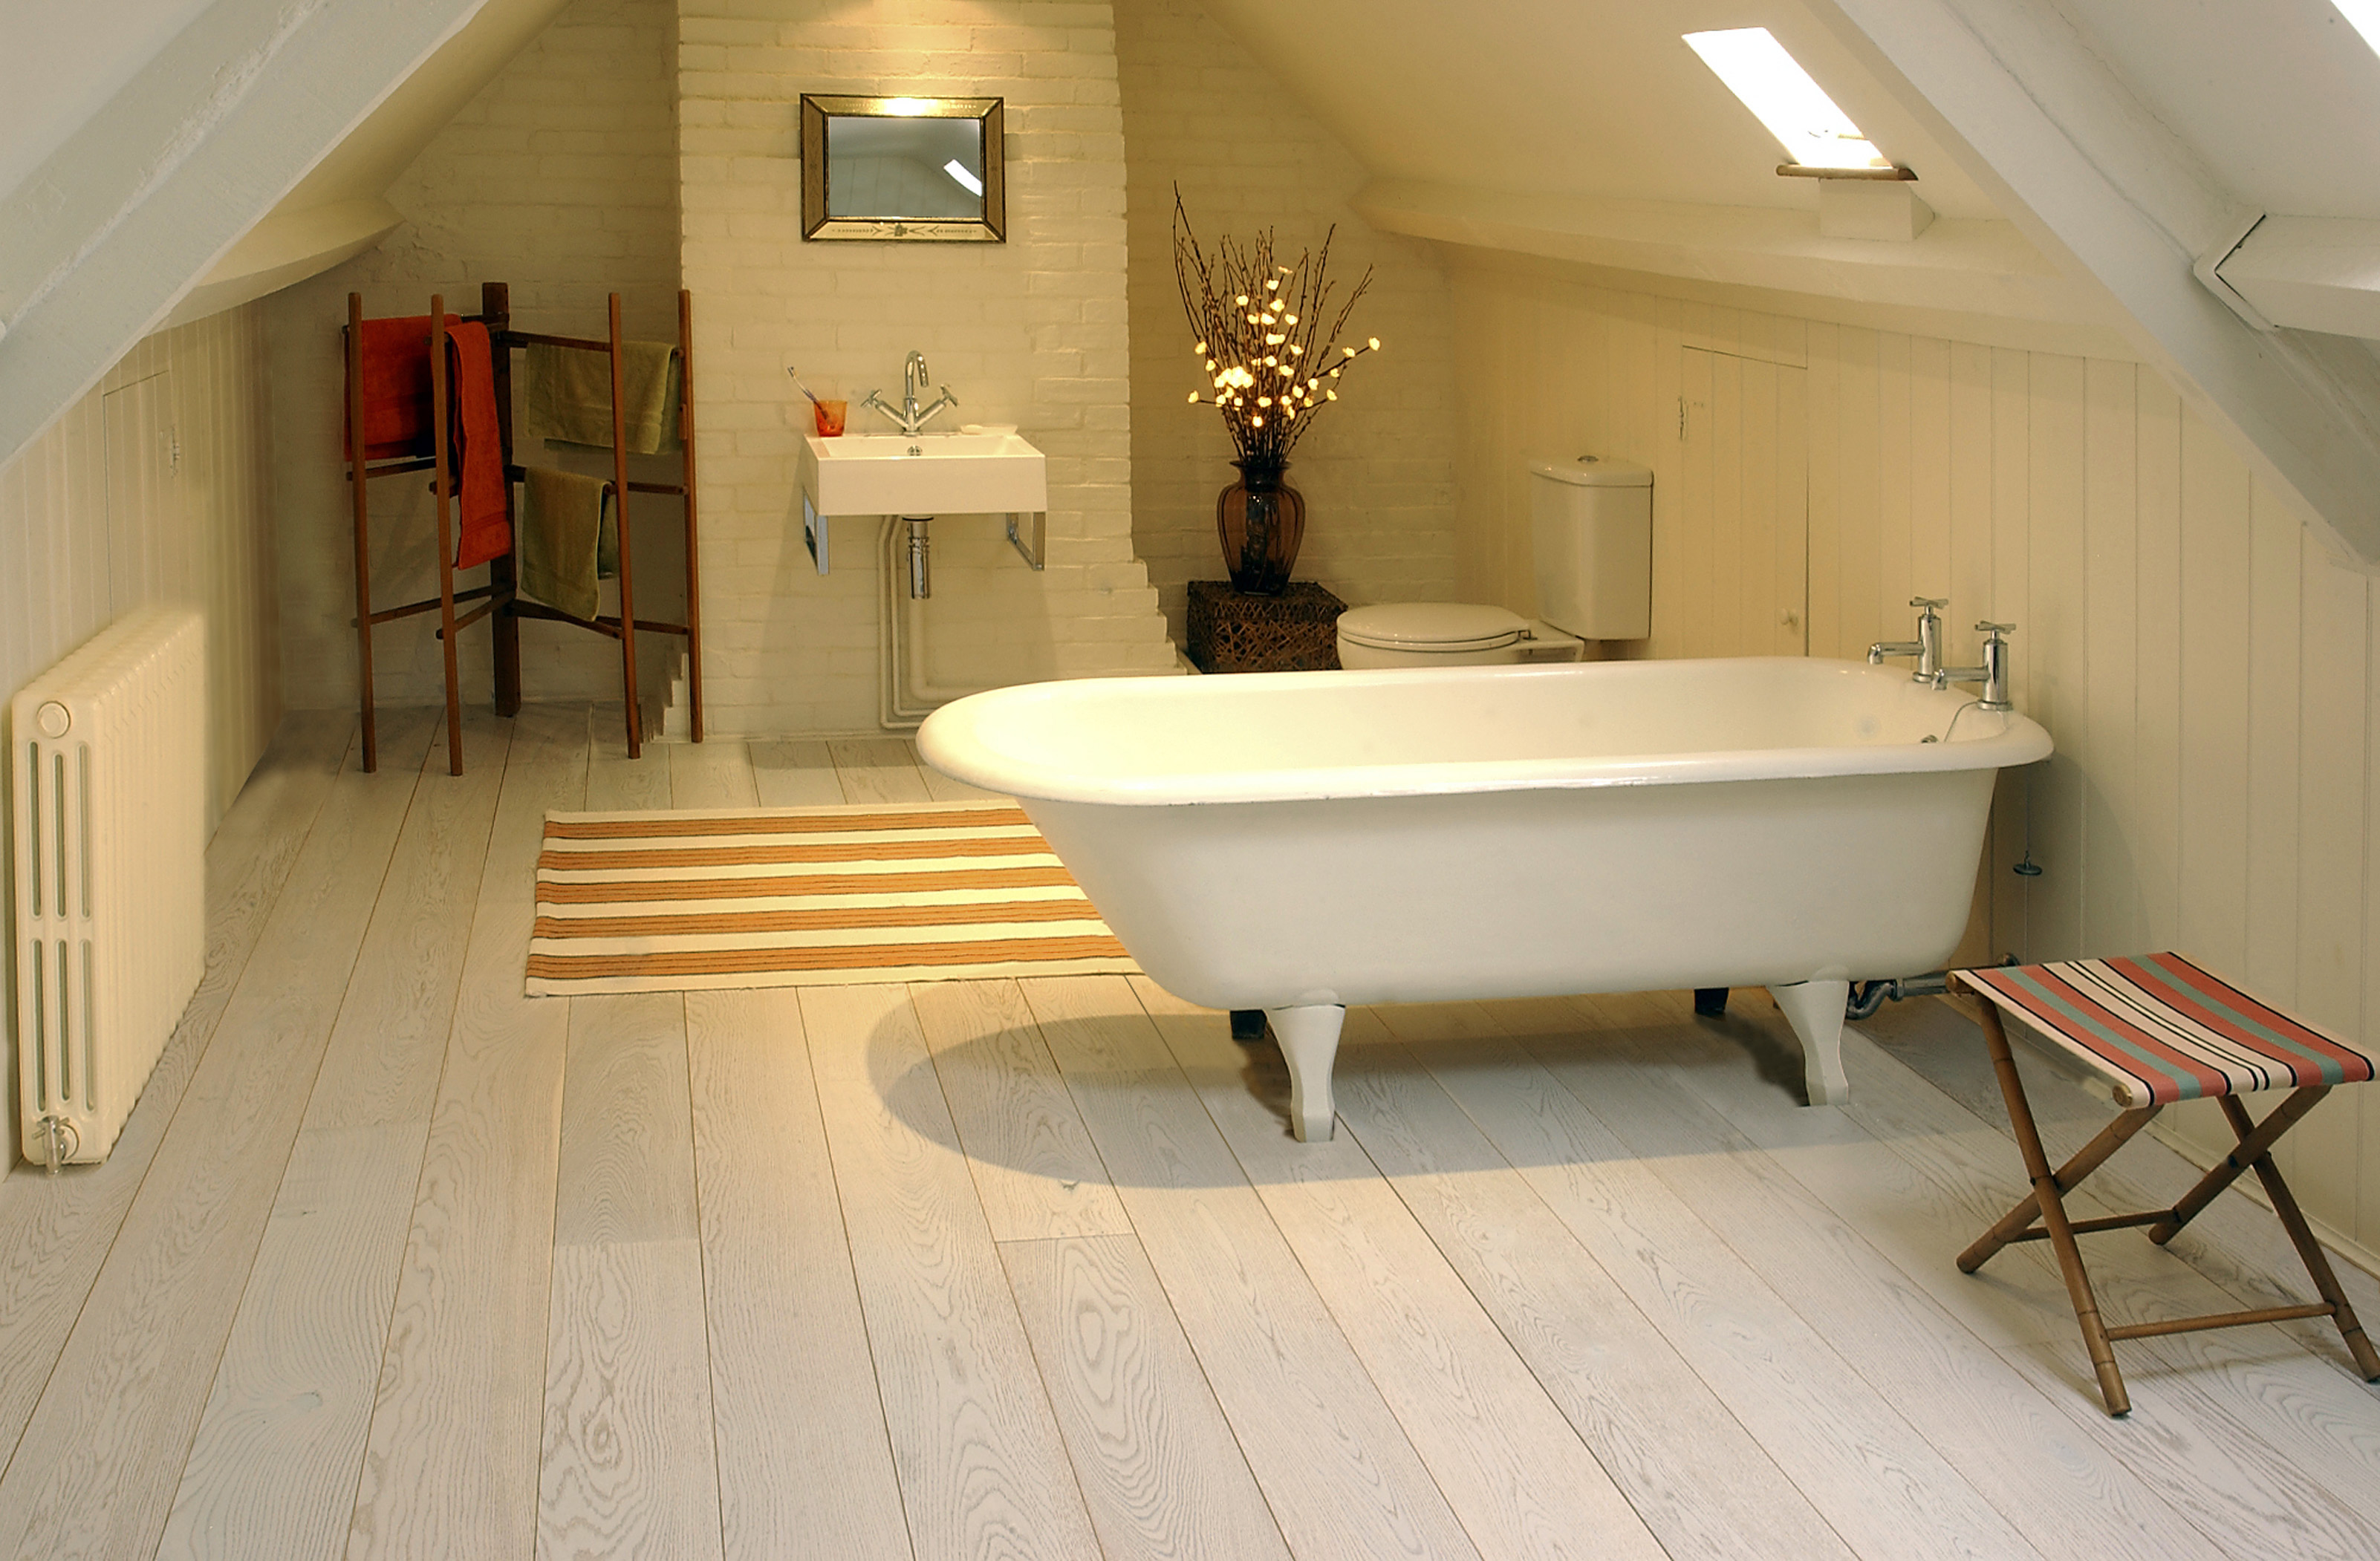 Wood floors in bathrooms - large and beautiful photos. Photo to ...